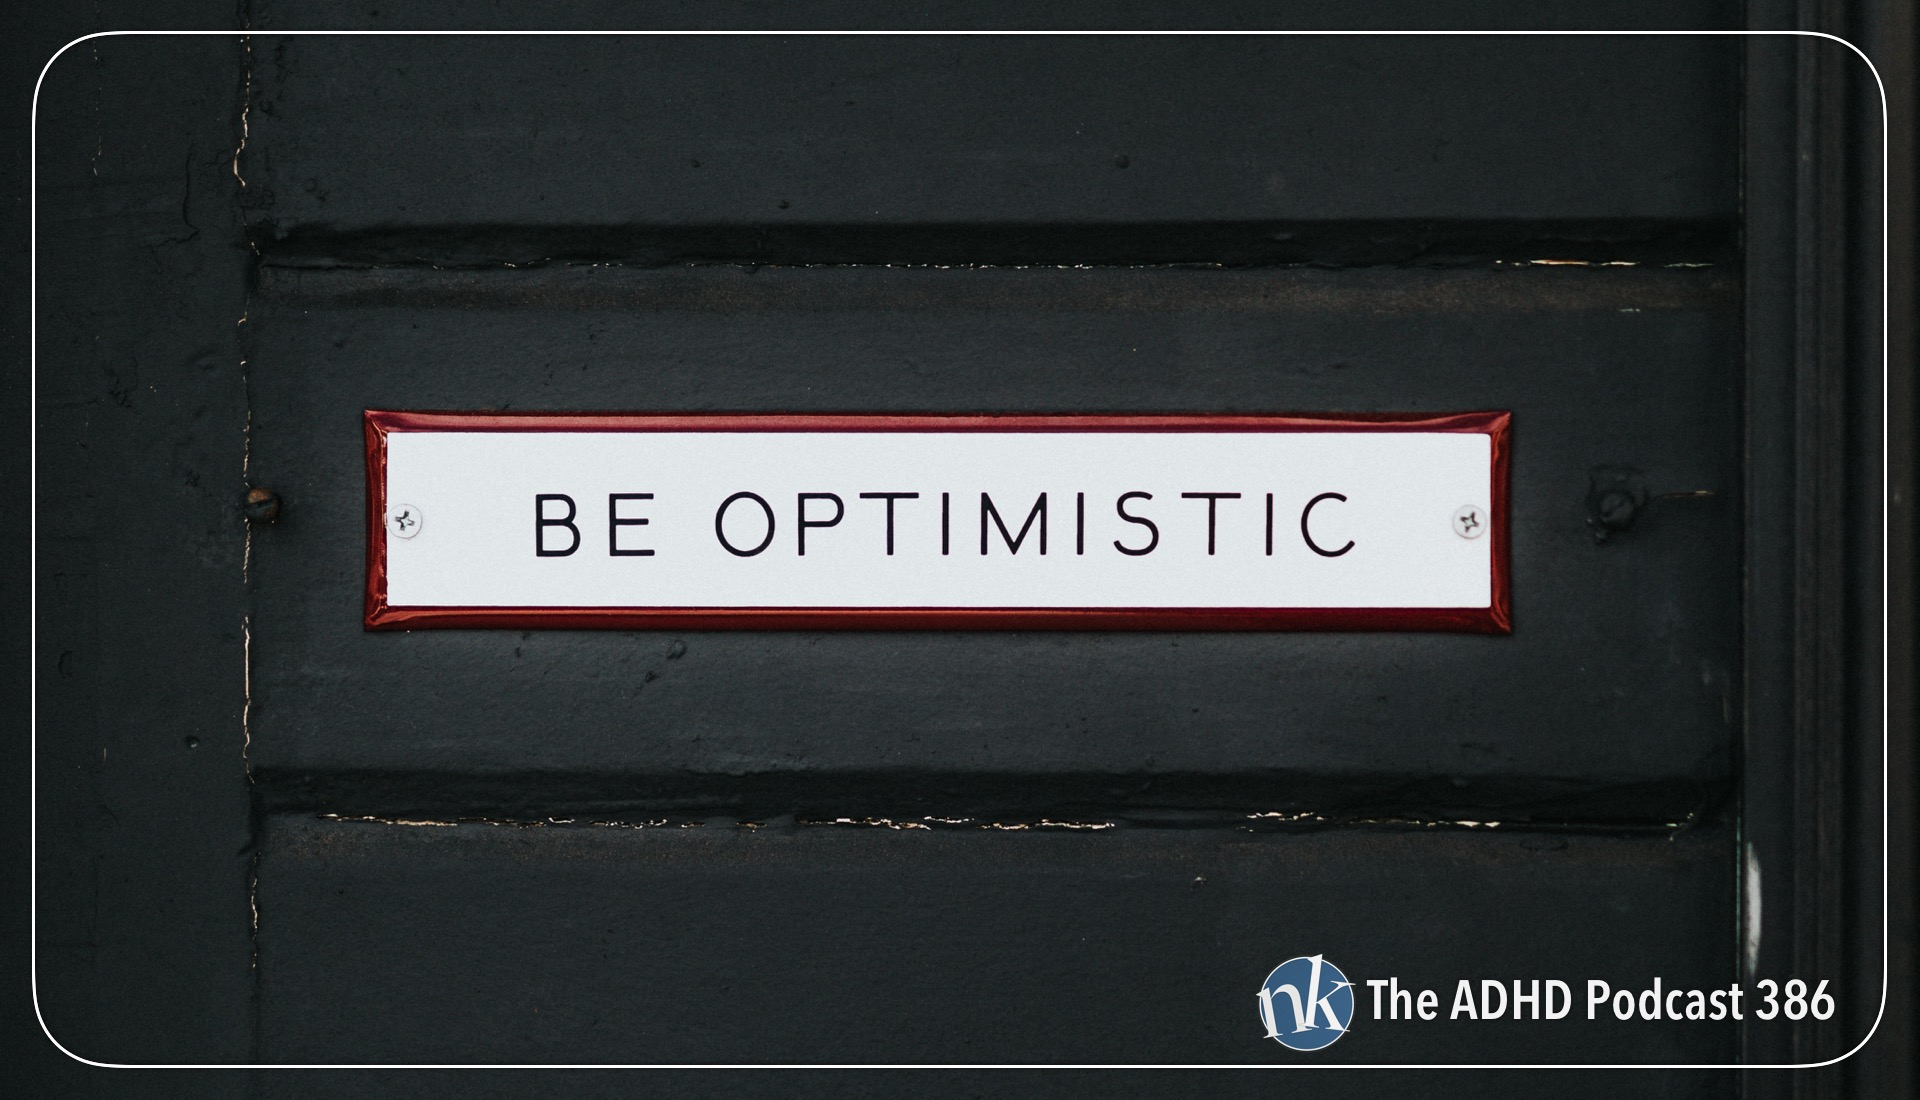 Be Optimistic with ADHD — The ADHD Podcast